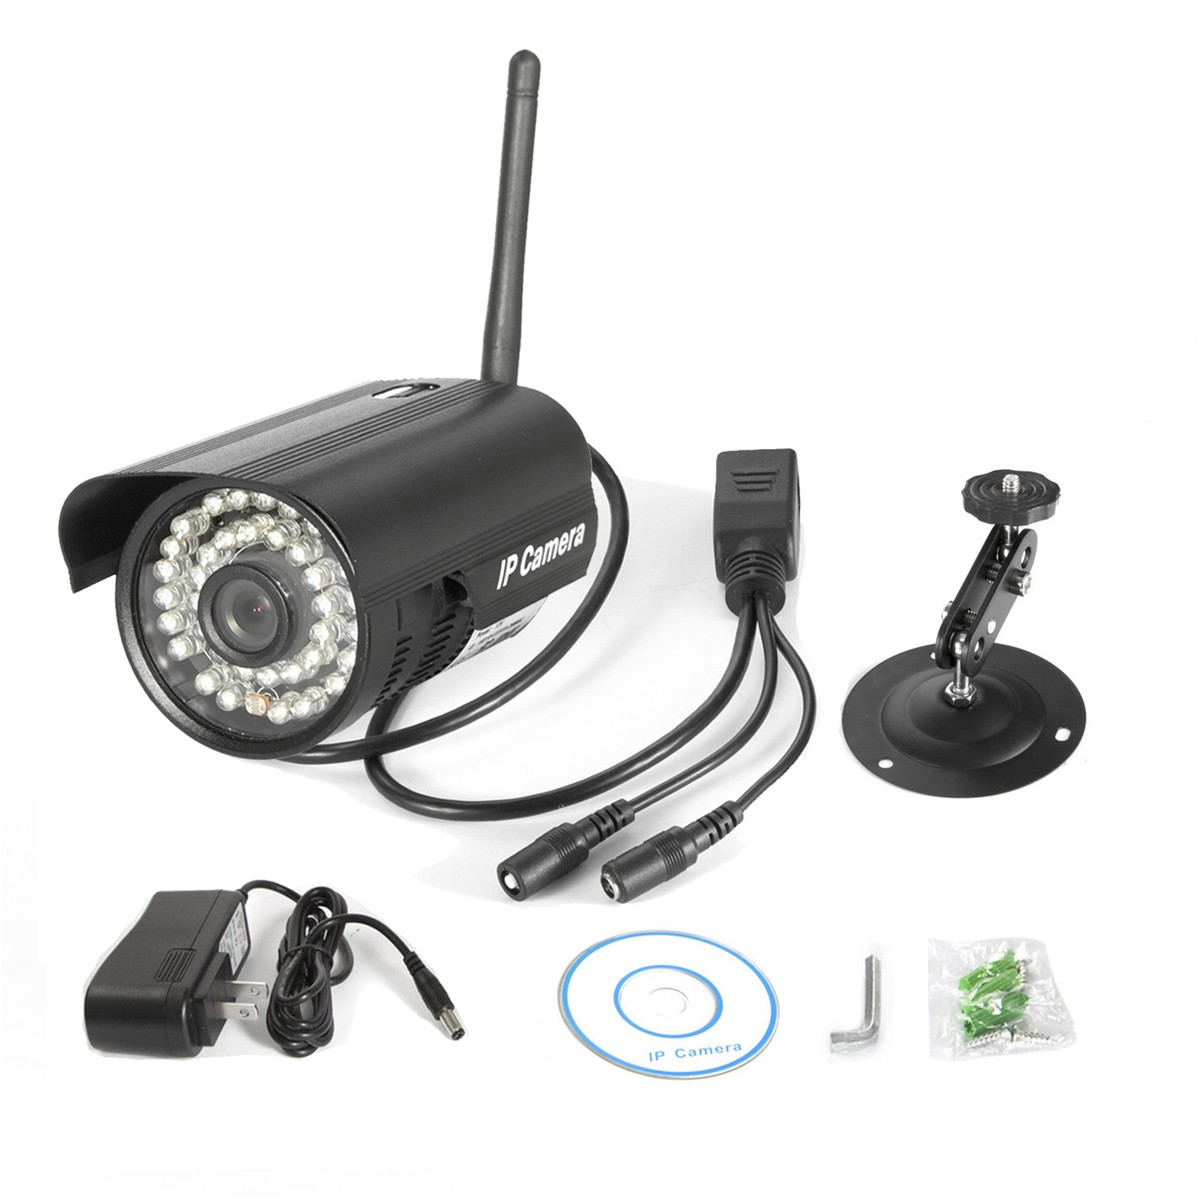 aly003 Wireless Network Outdoor Waterproof Security Wifi IP Camera